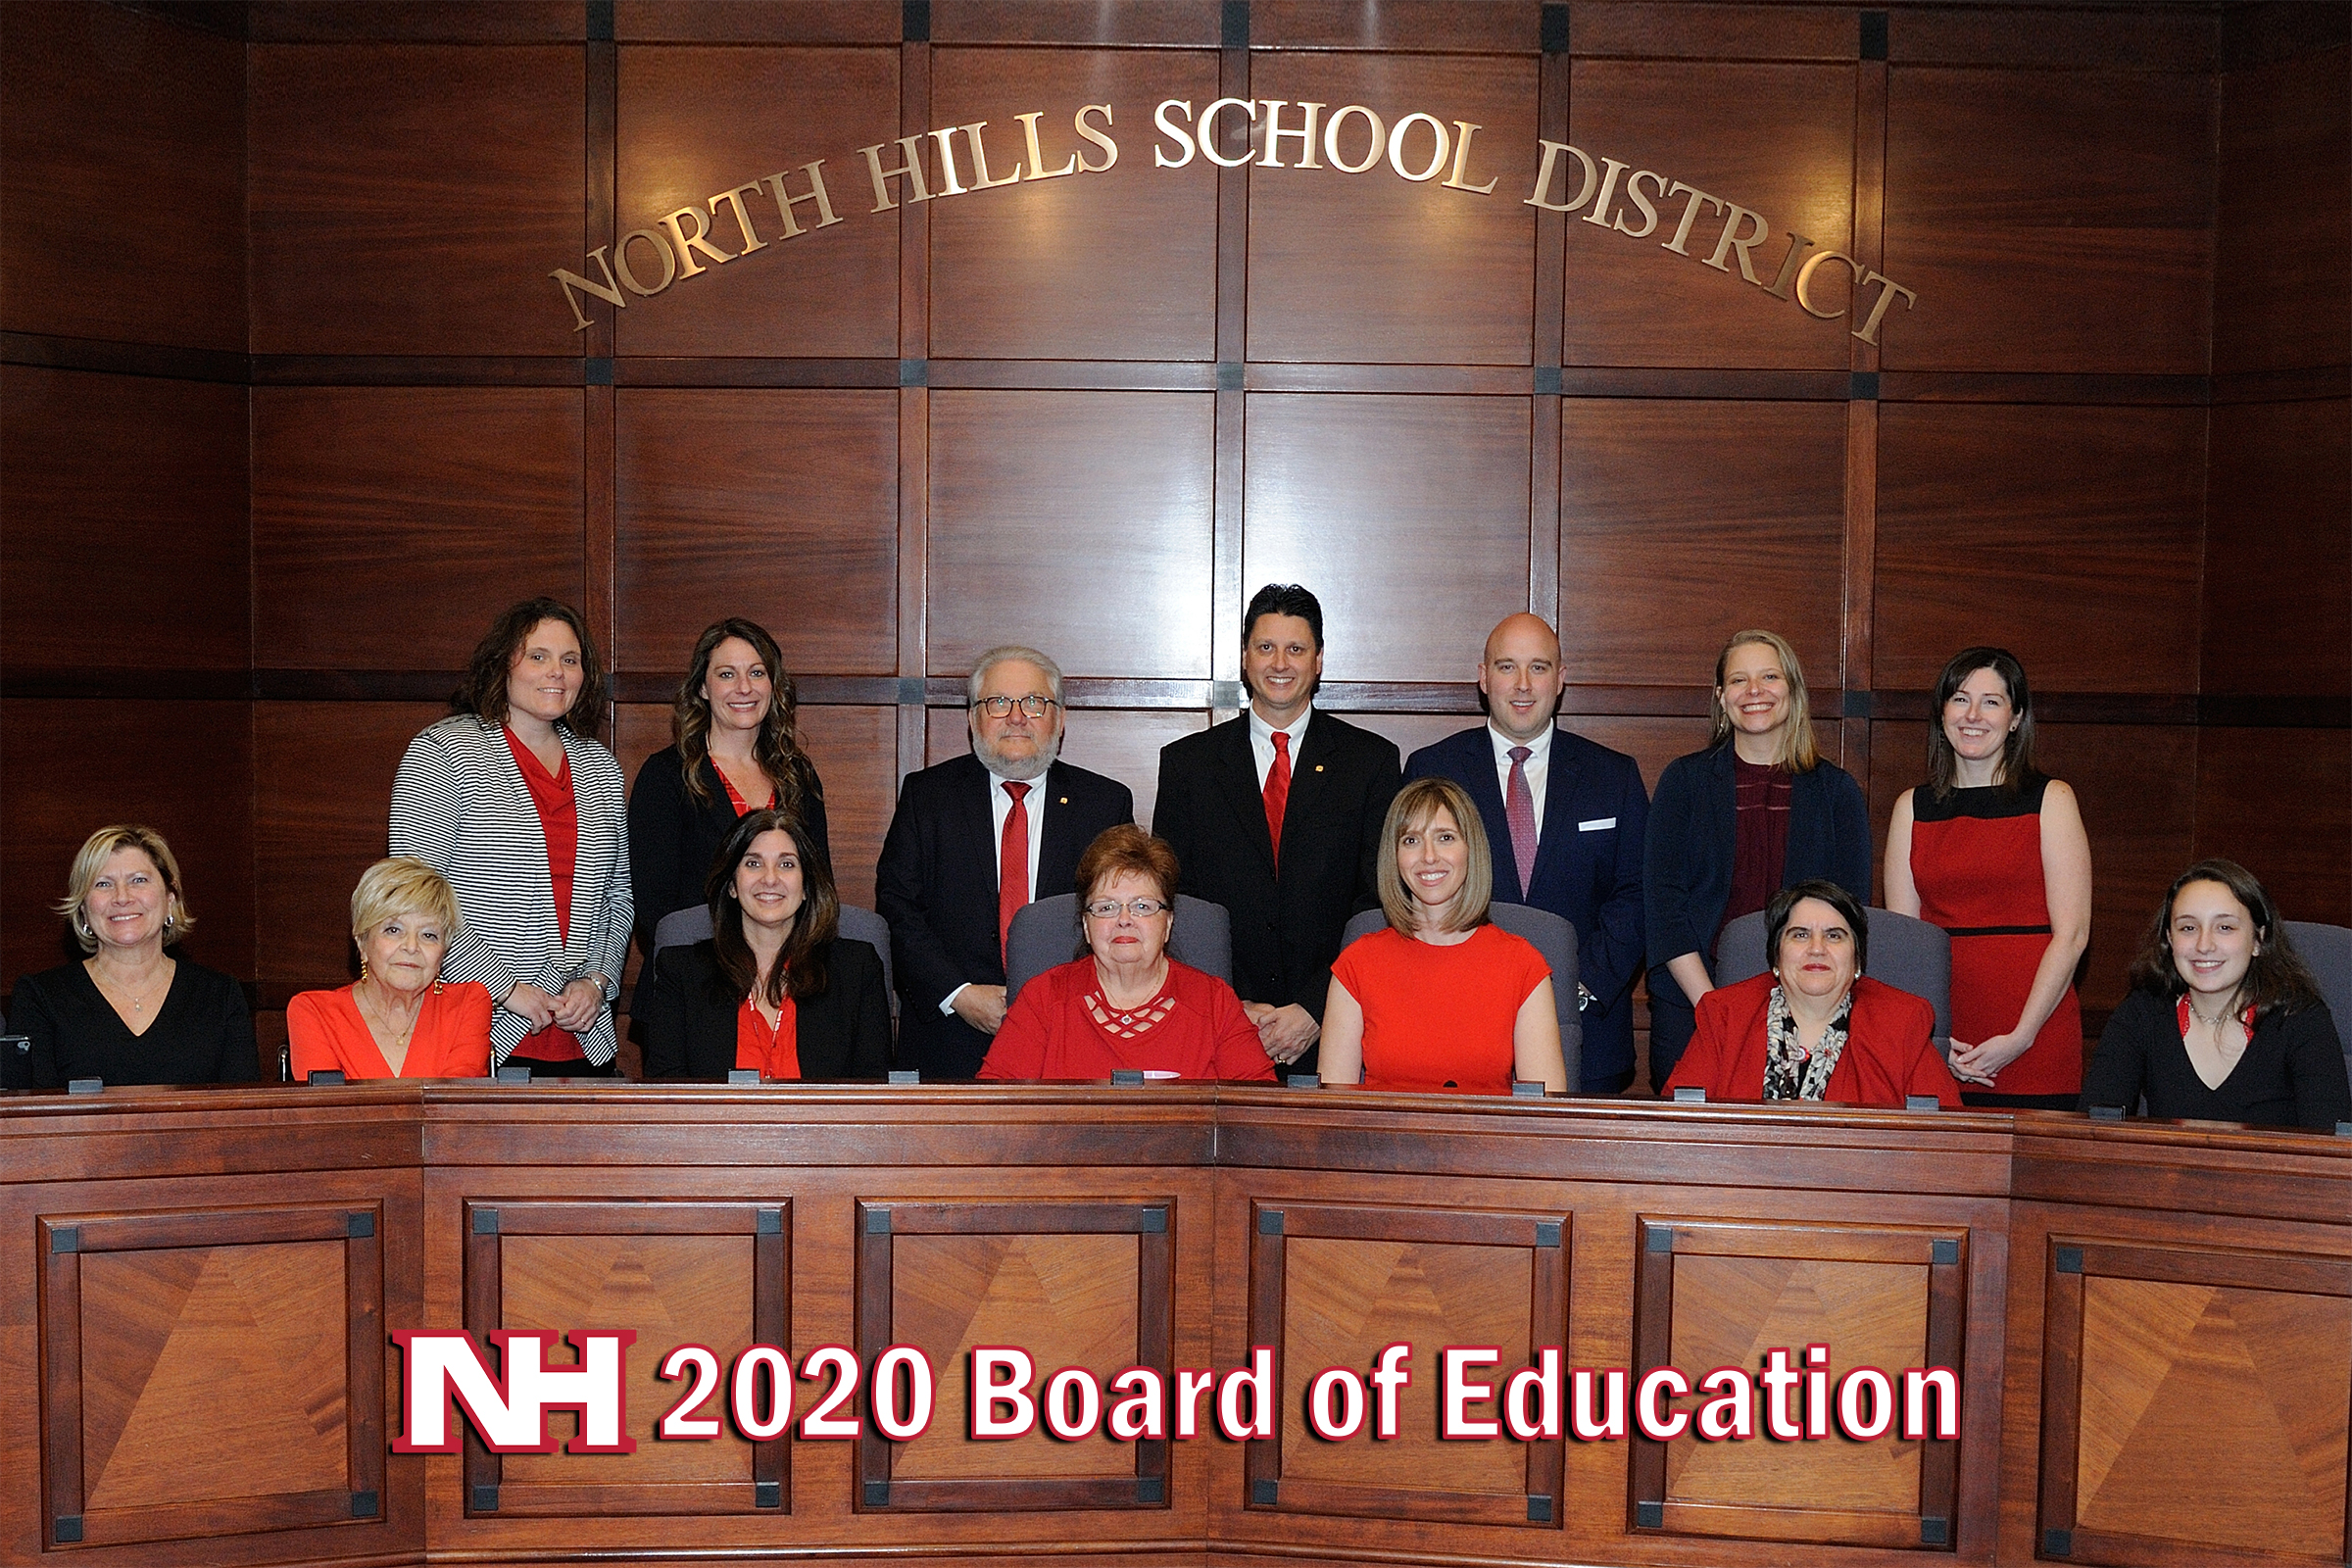 2020 NHSD Board of Education